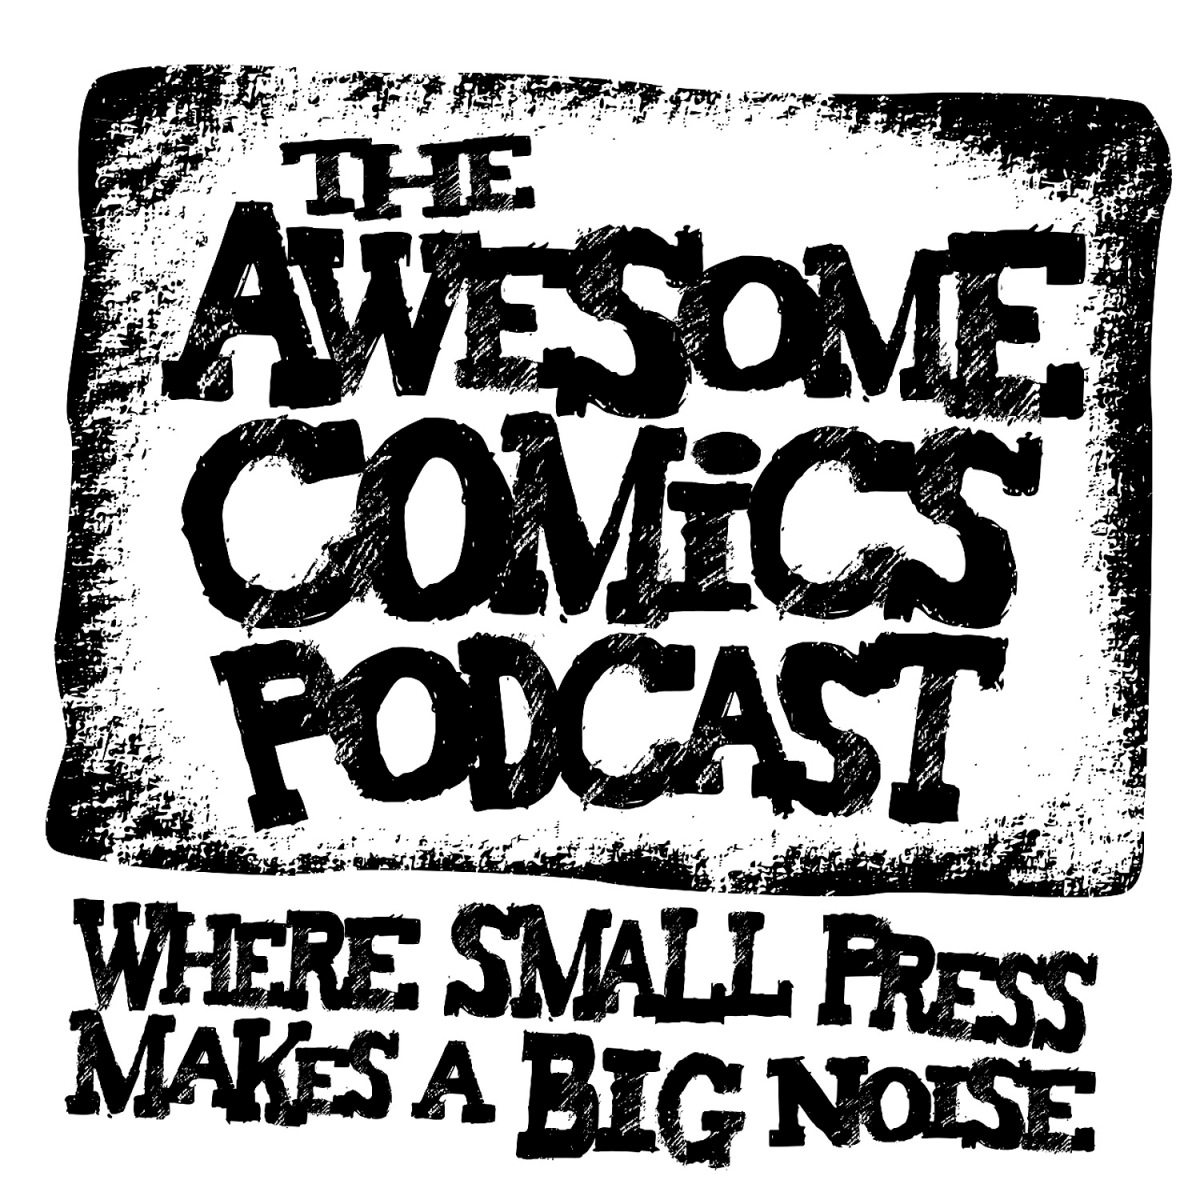 ComicScene Writers 4: Tony Esmond brings you awesome small press coverage